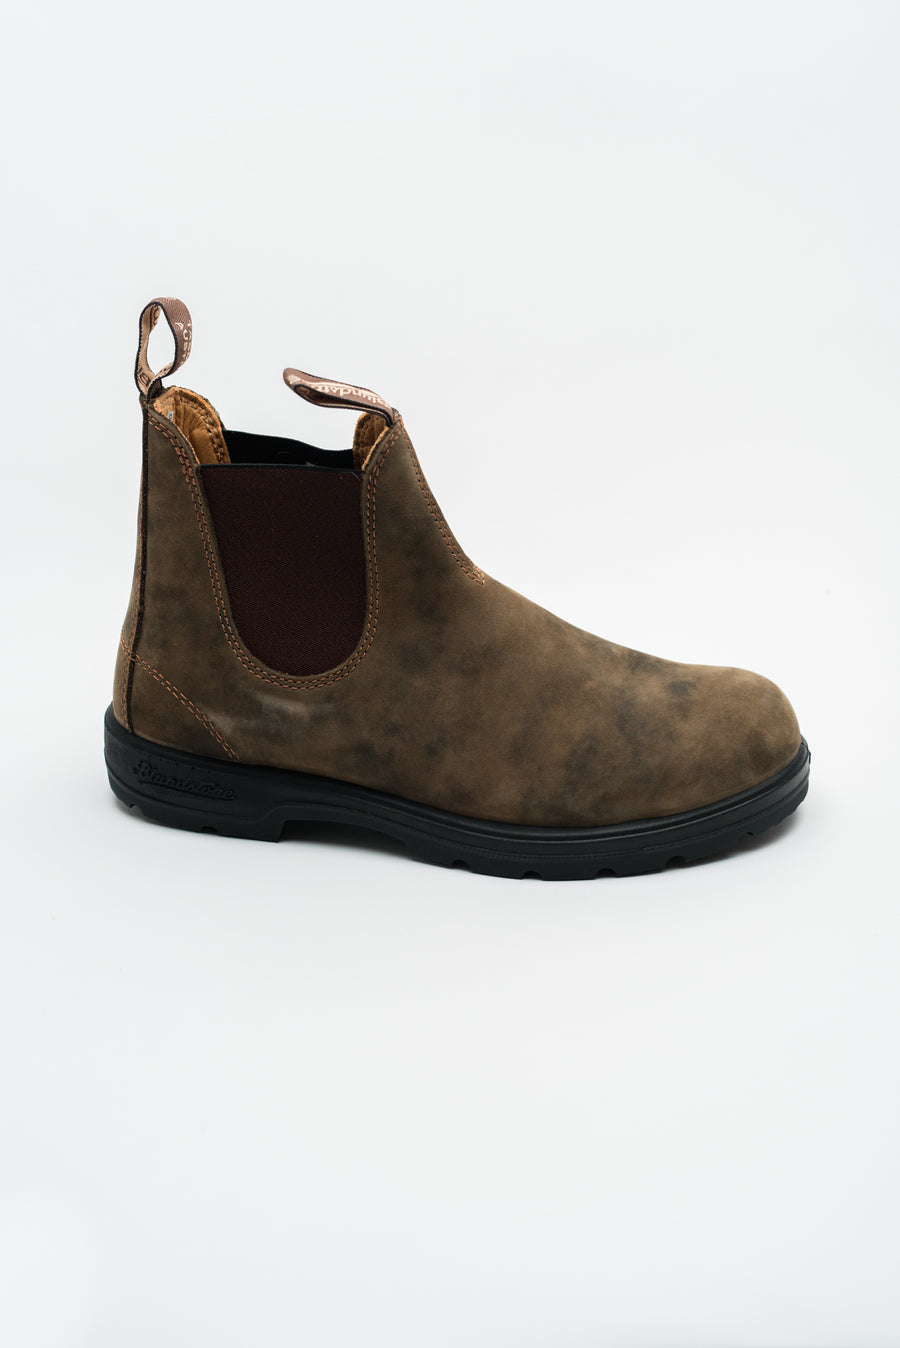 585 Rustic Brown Blundstone